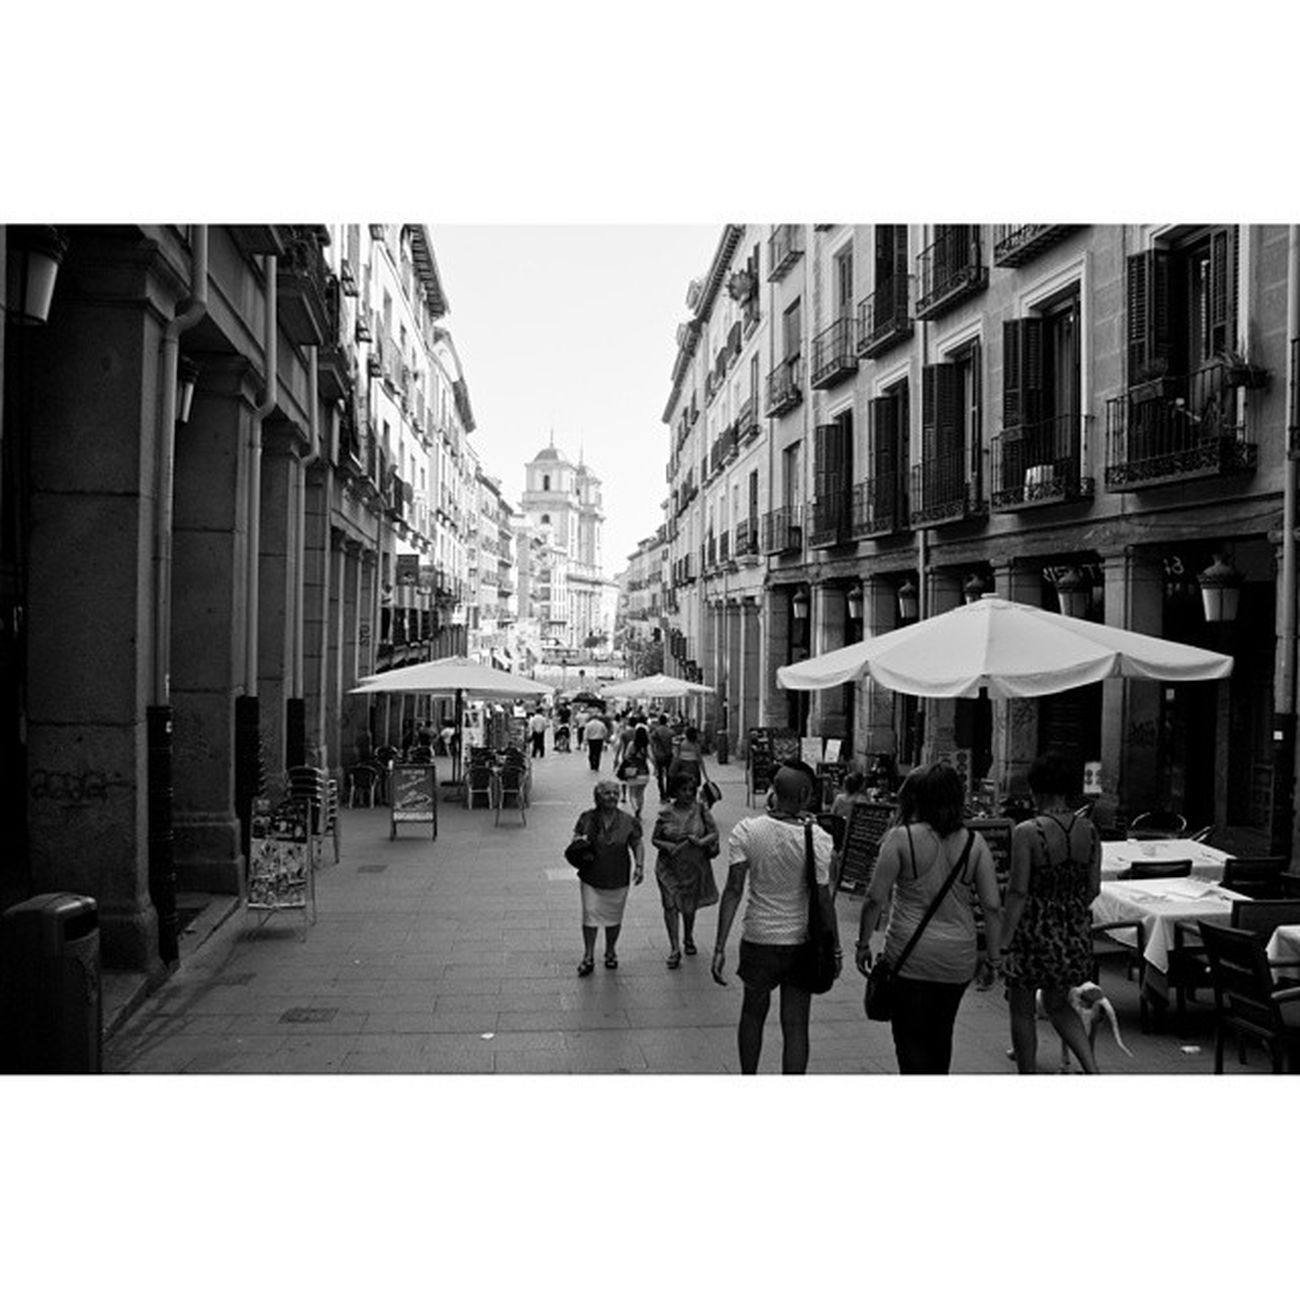 Calletoledo Calle Toledo near Plaza mayor plazamayor plaza_mayor. Madrid Spain españa. Taken by my sonyalpha dslr a200. Taken in my 2010 trip حي مدريد اسبانيا